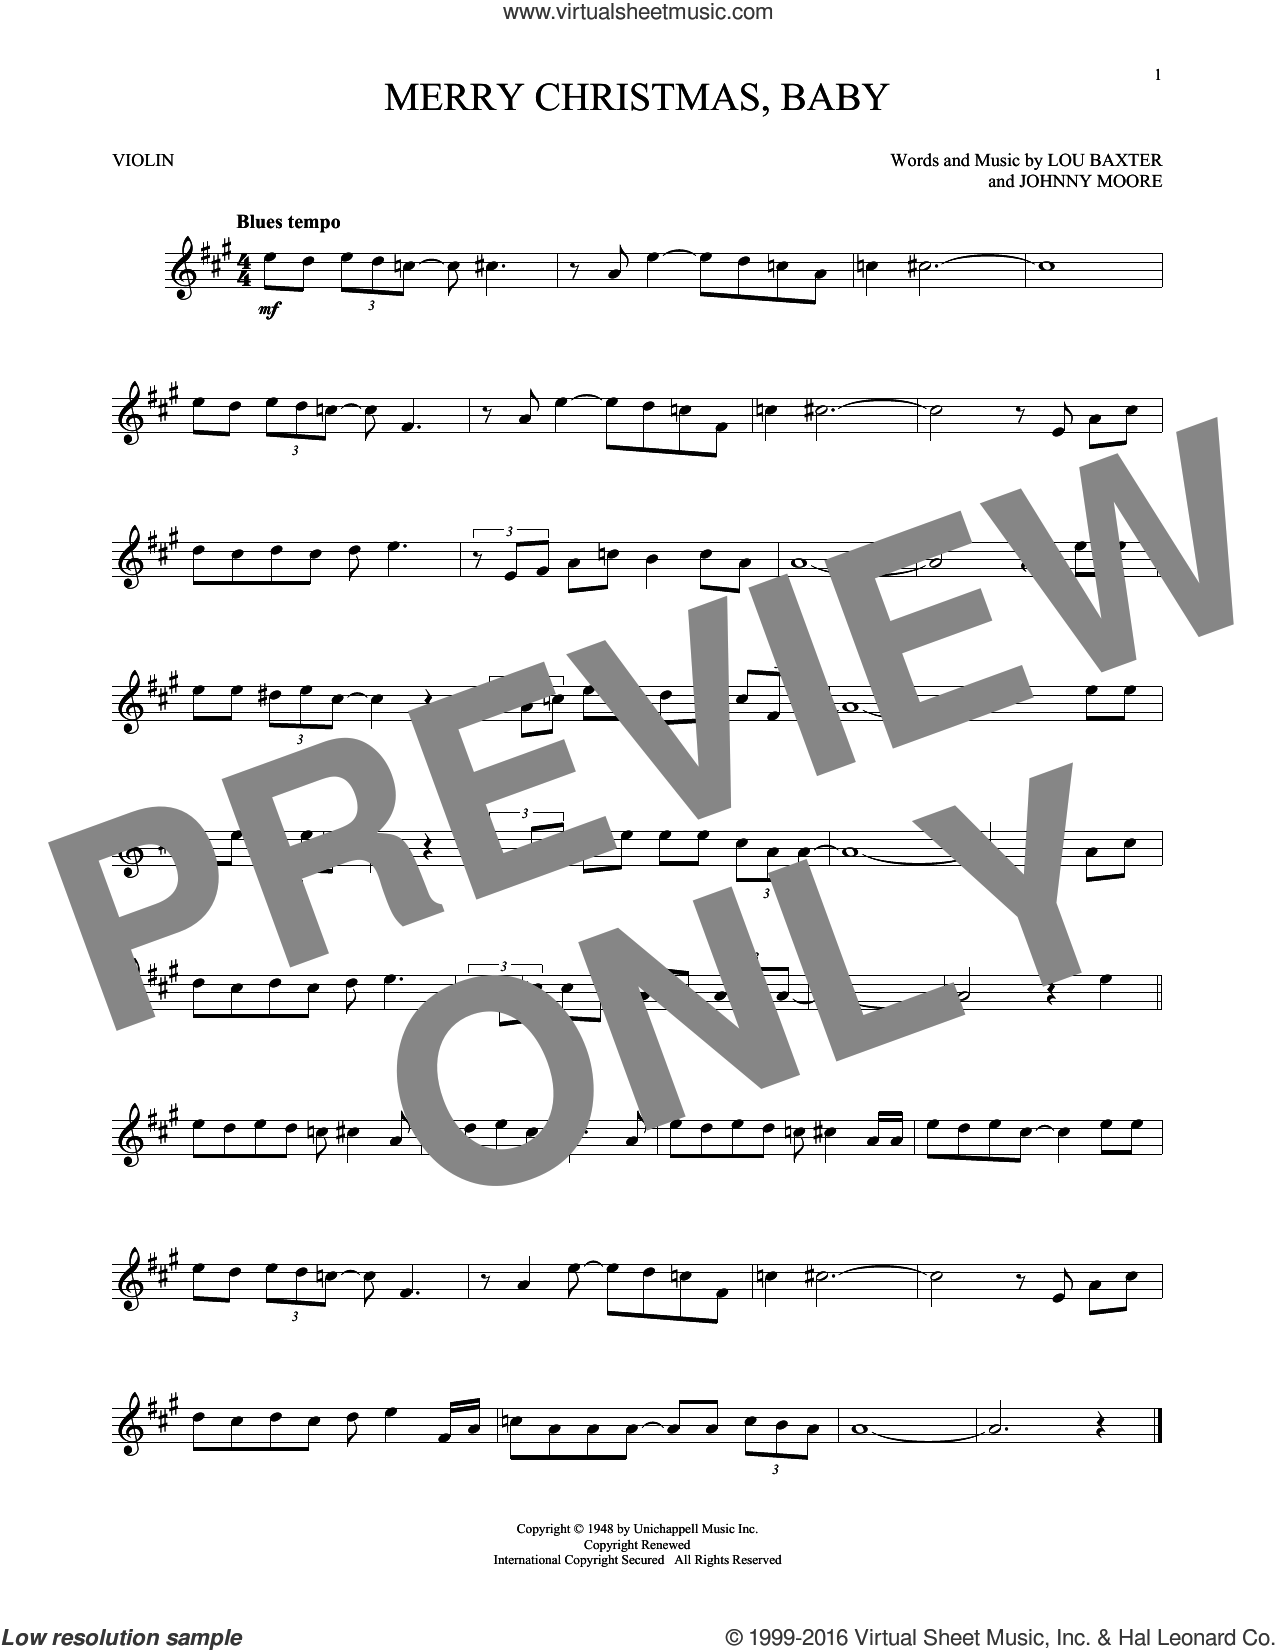 Merry Christmas, Baby sheet music for violin solo by Lou Baxter